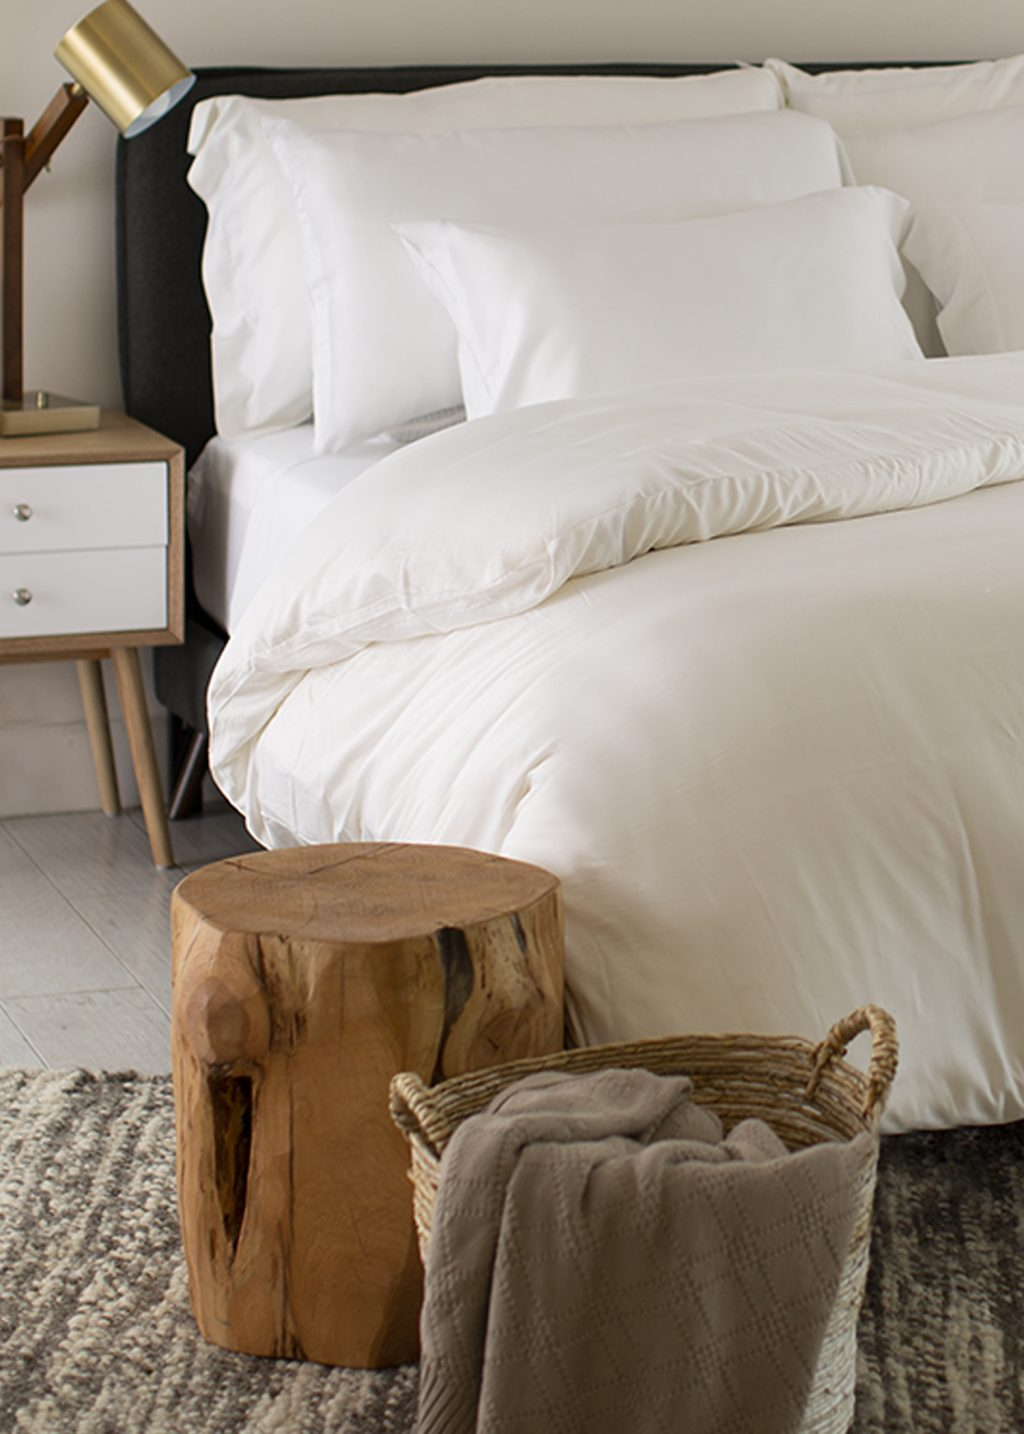 How to Keep Your Sheets Nice and Soft